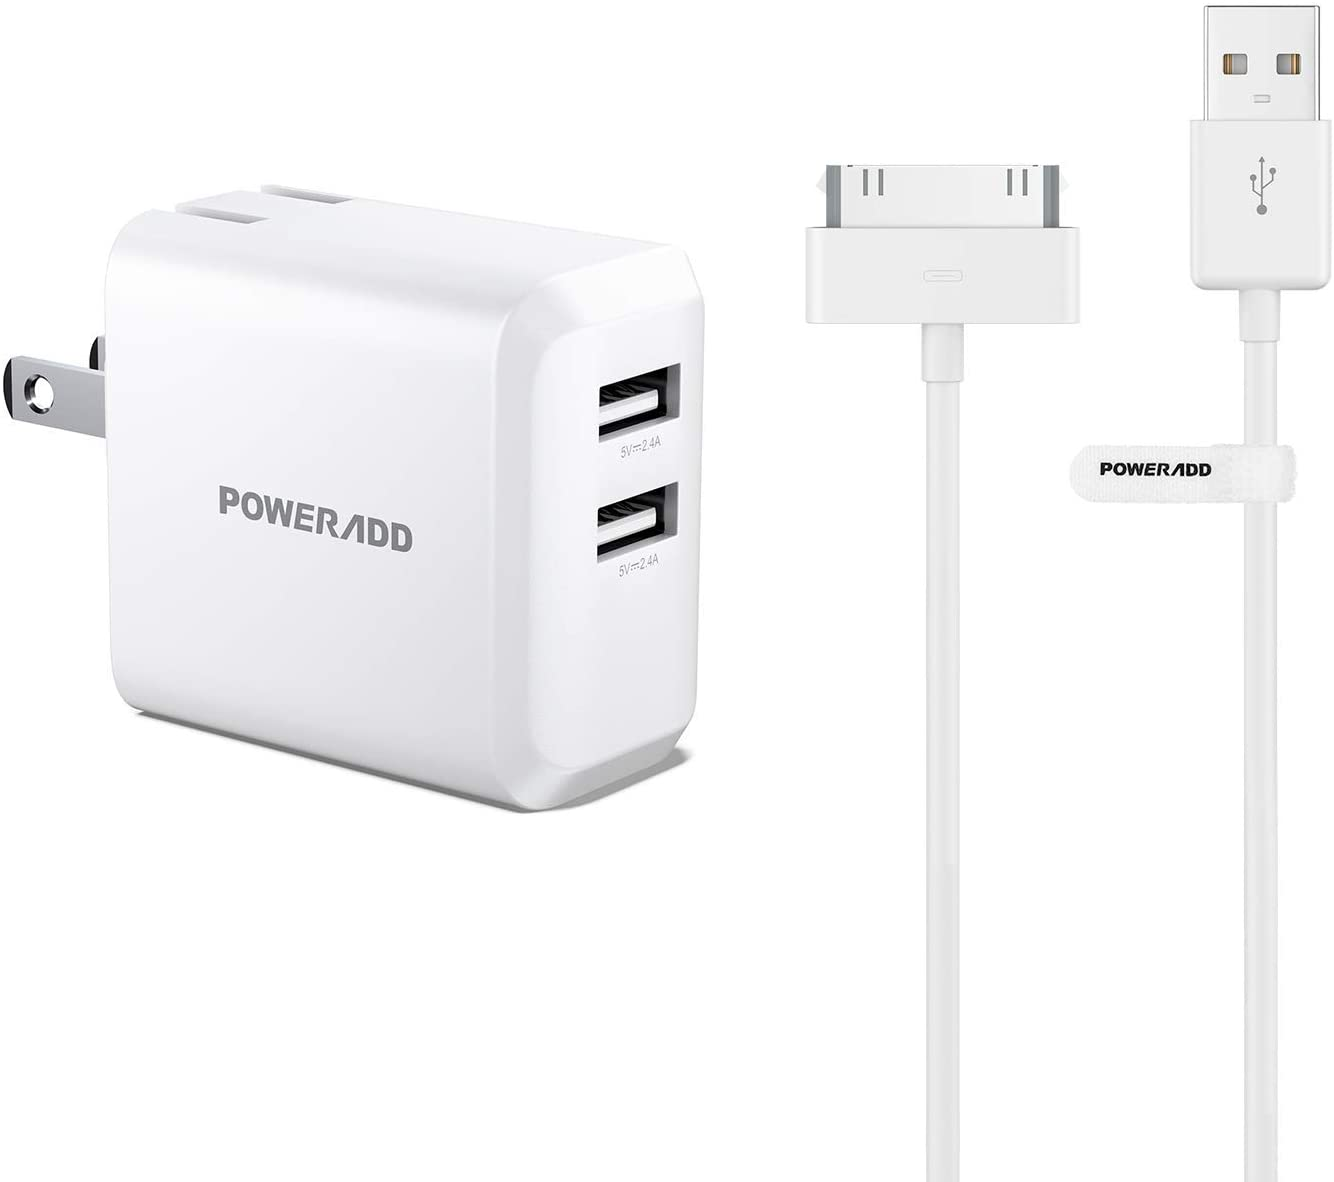 USB Phone Charger, POWERADD 24W Dual Port Wall Charger with Foldable Plug Apple Certified iPhone 4 4s 3G 3GS iPad 1 2 3 iPod Touch Nano 30 Pin Charger USB Sync Cable Charging Cord Dock Adapter Data 4